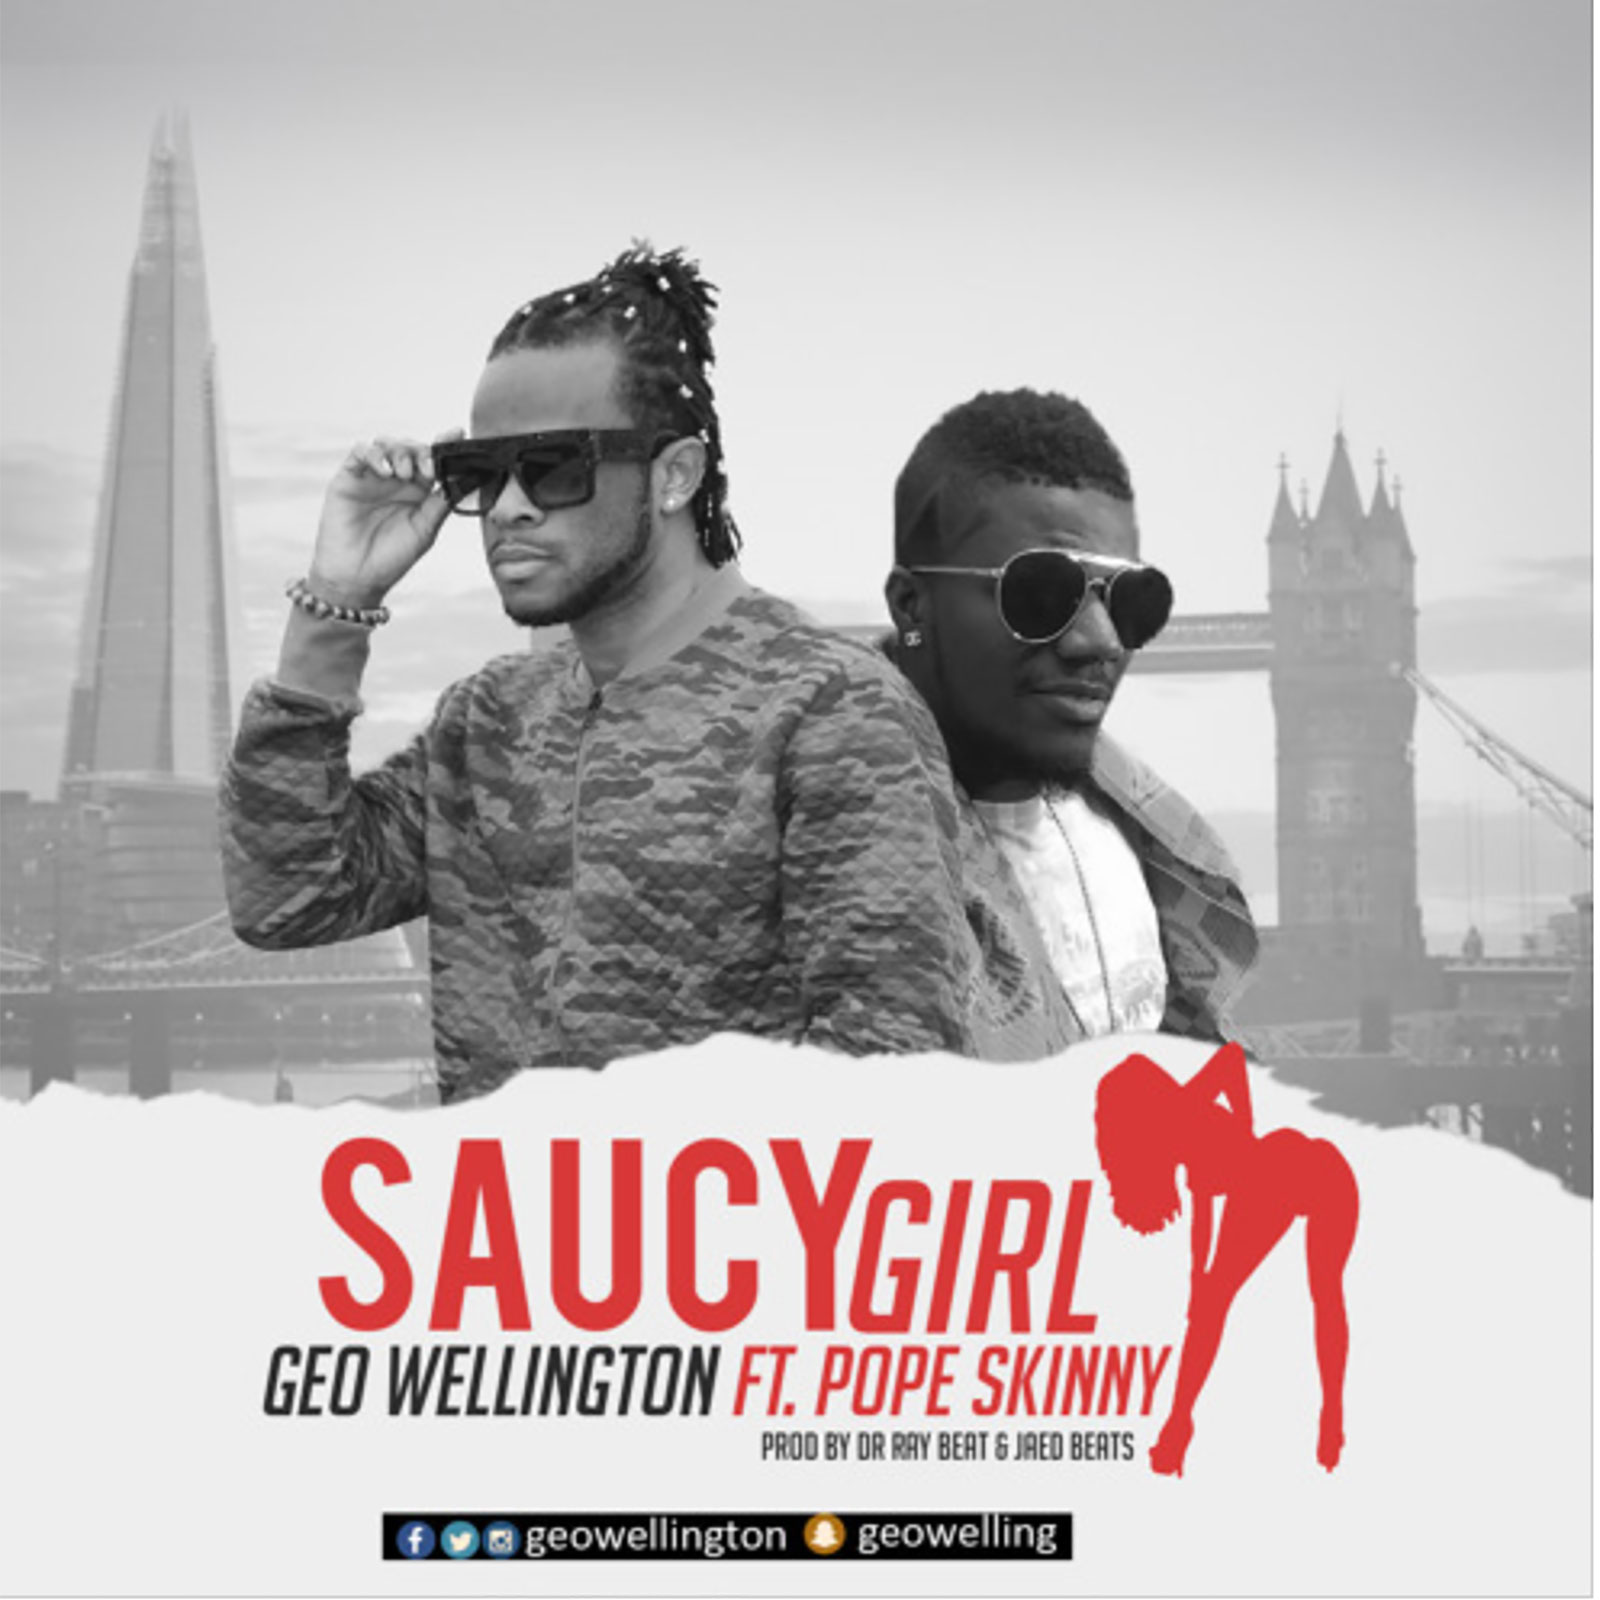 Saucy Girl by Geo Wellington feat. Pope Skinny